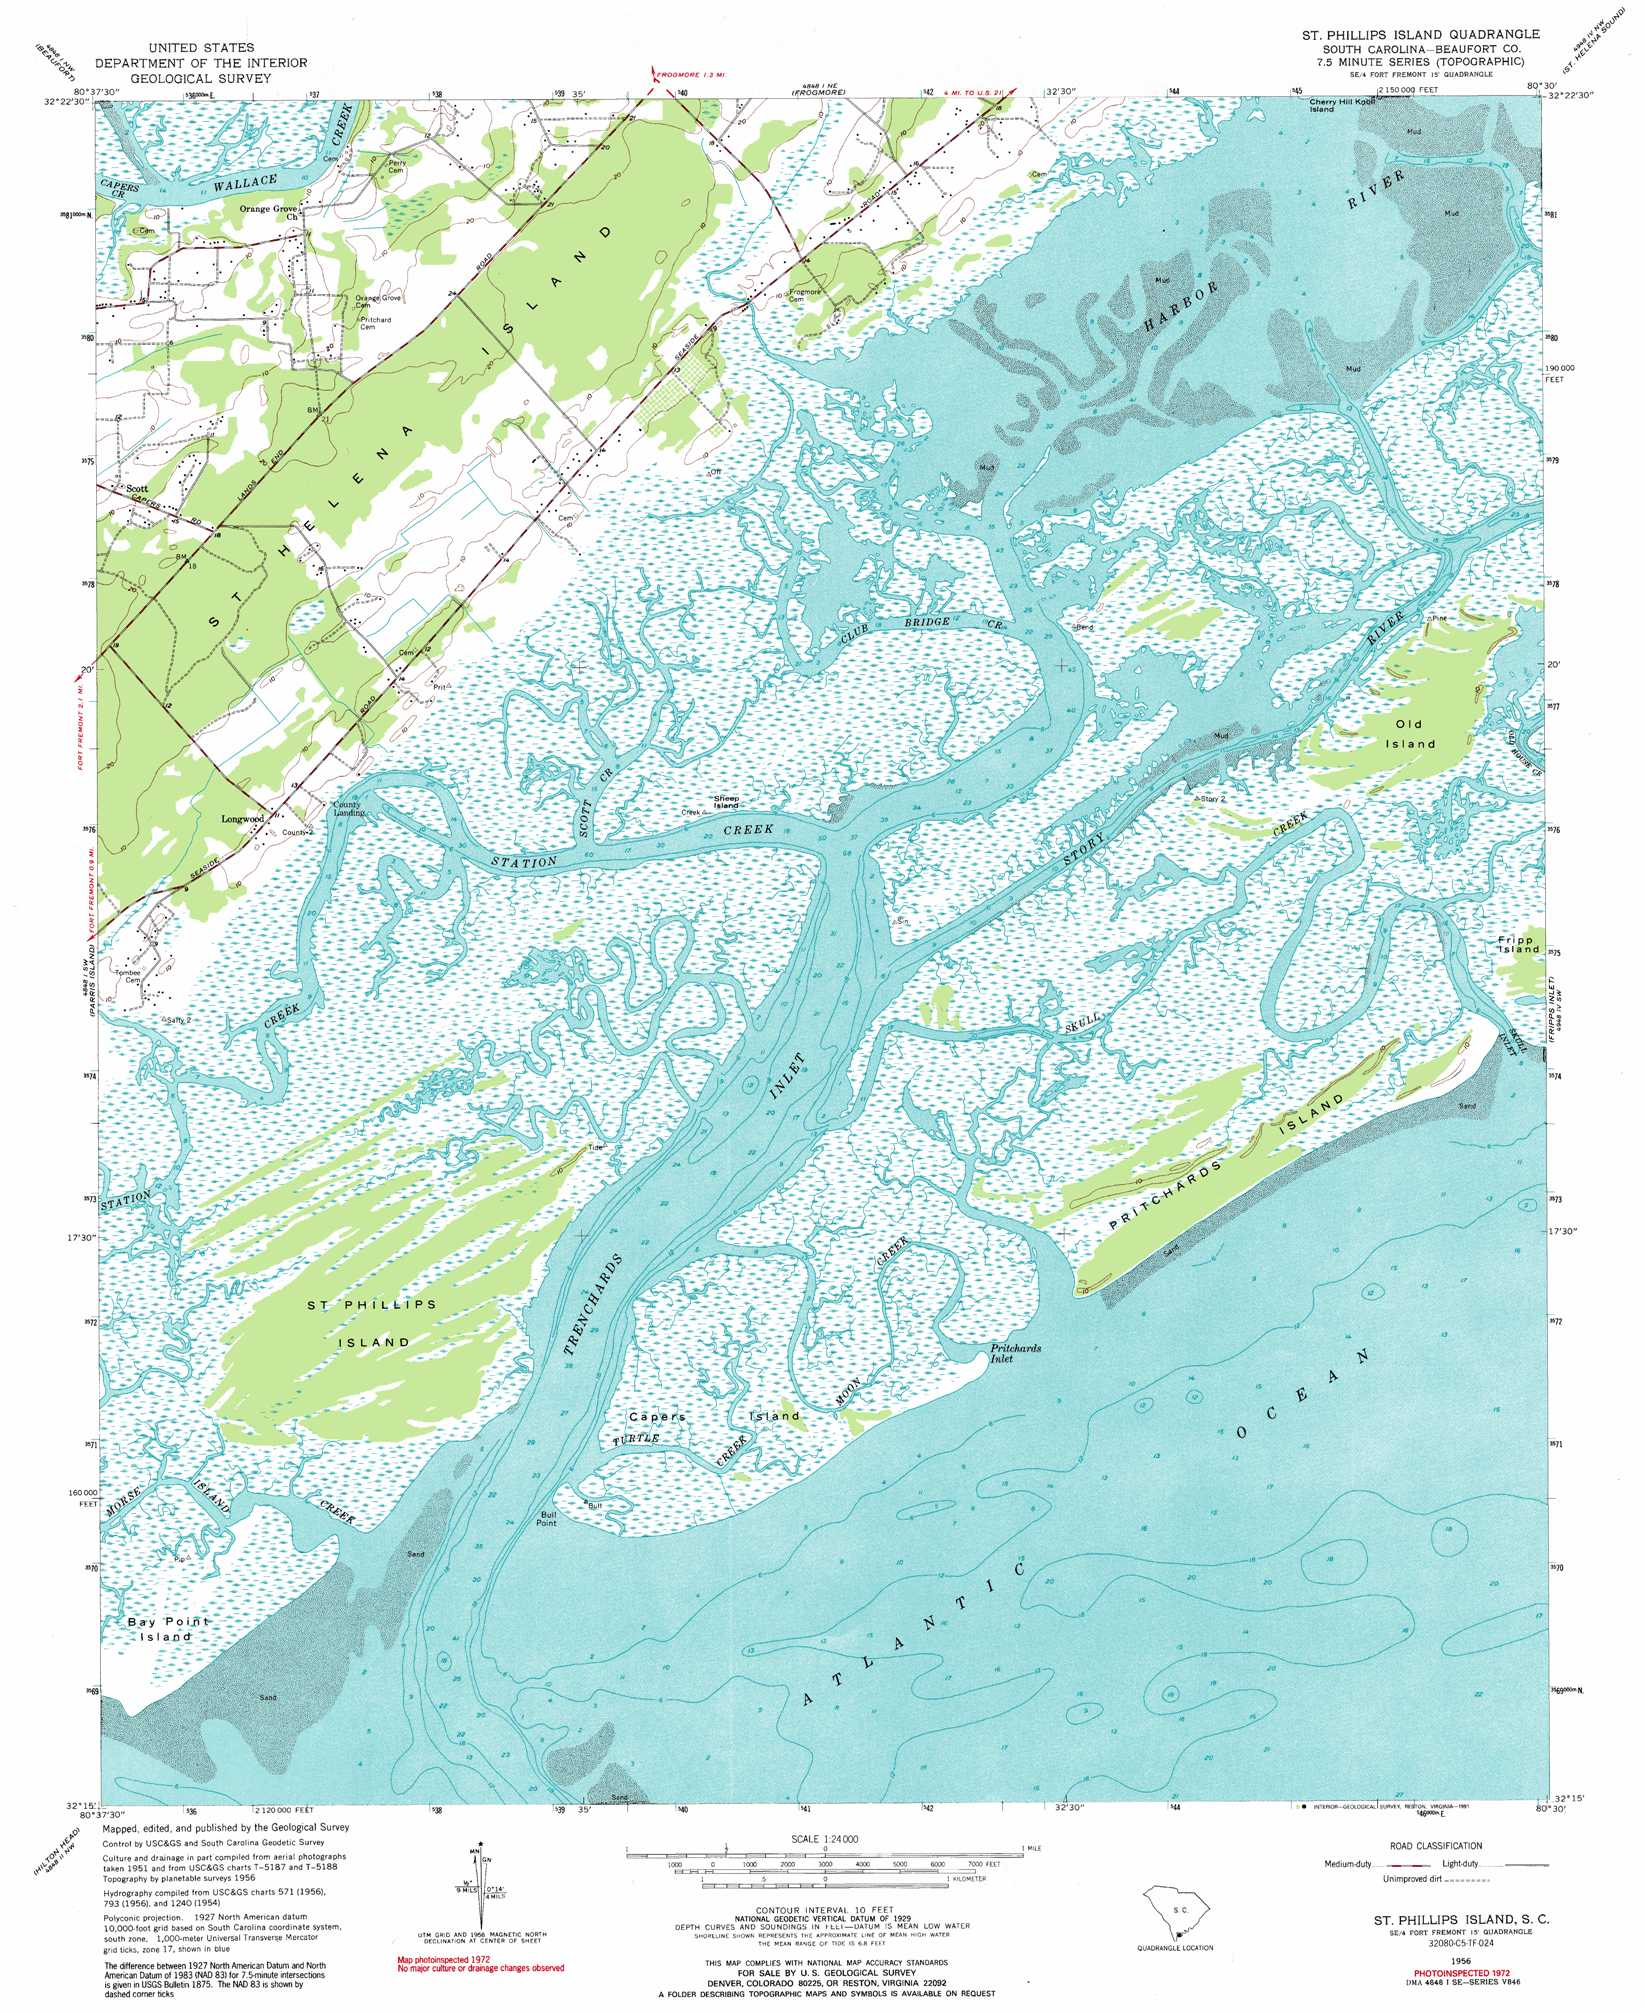 florida topographic map with 32080c5 on 40089e6 as well 35118f4 moreover Maine Reference Map 493 as well 40110f8 further Ai Topo.